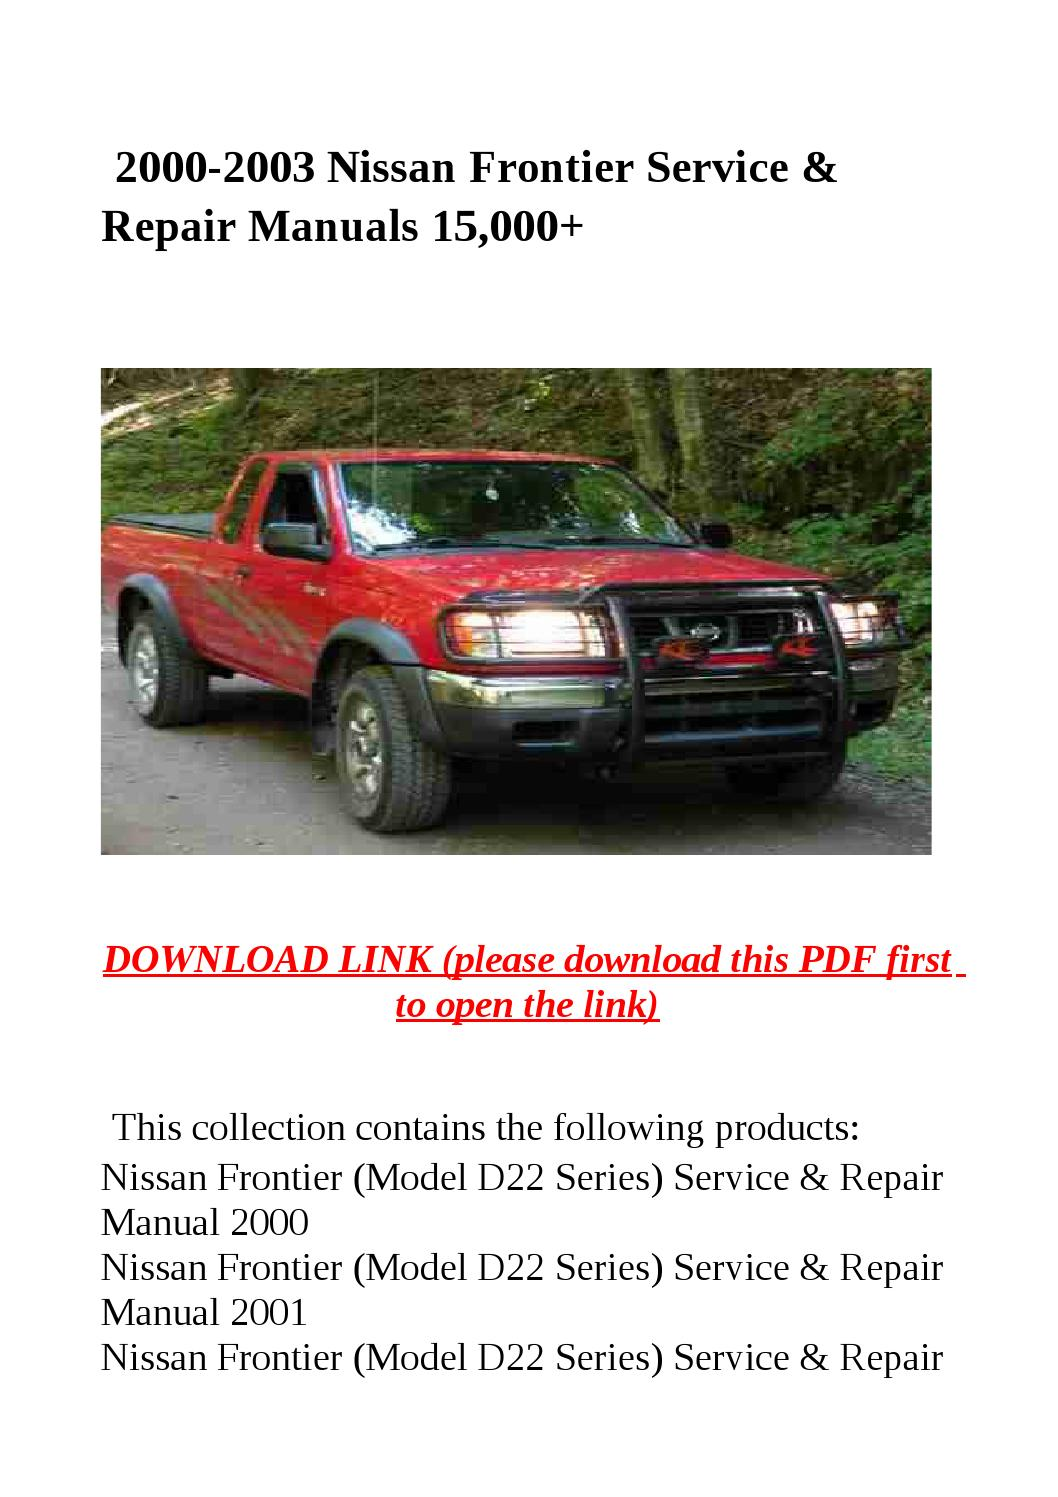 Nissan Frontier 2002 Owners Manual PDF